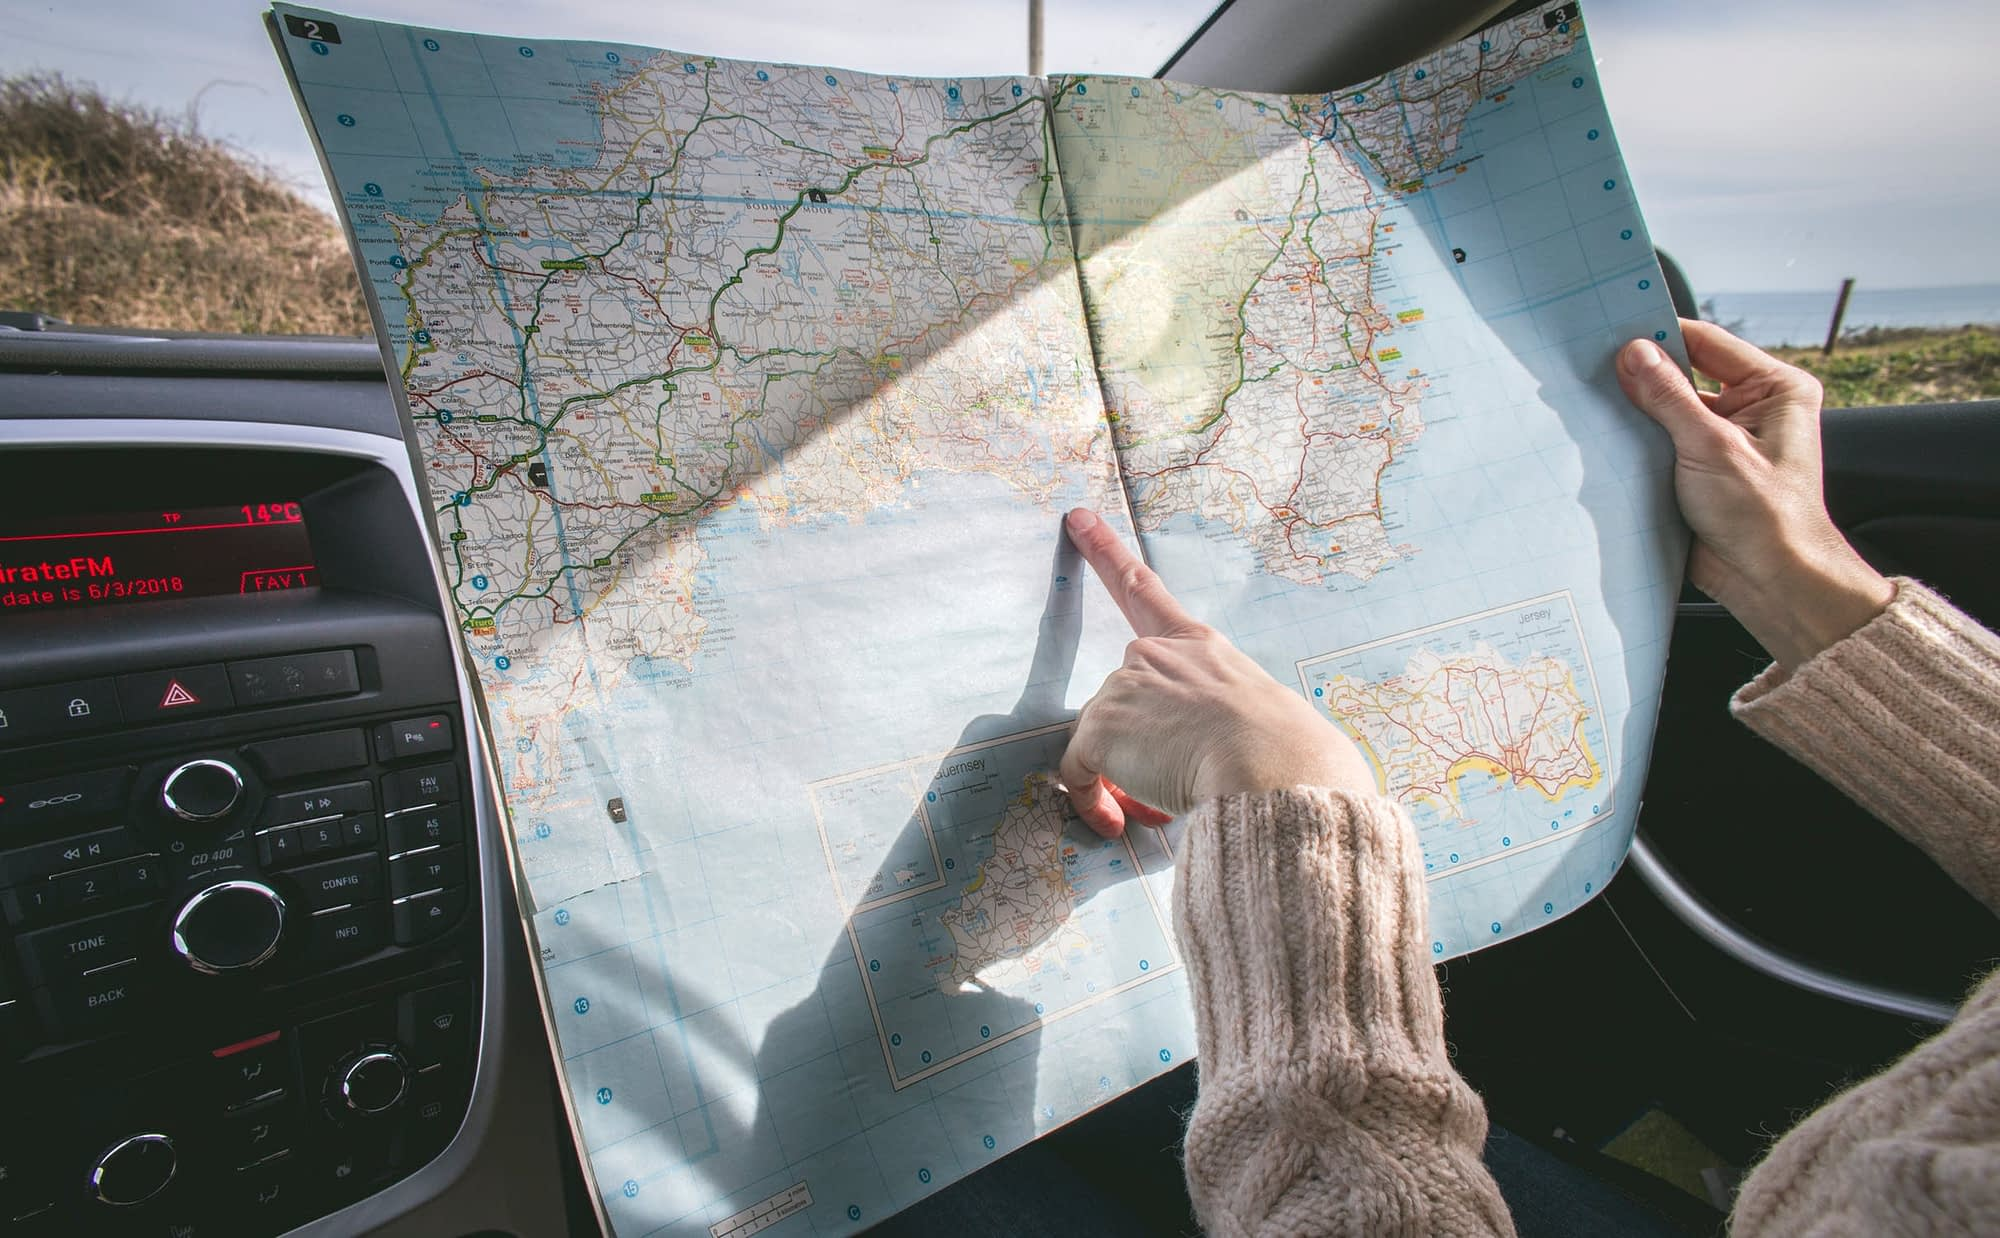 benefits of workforce routing and location tracking